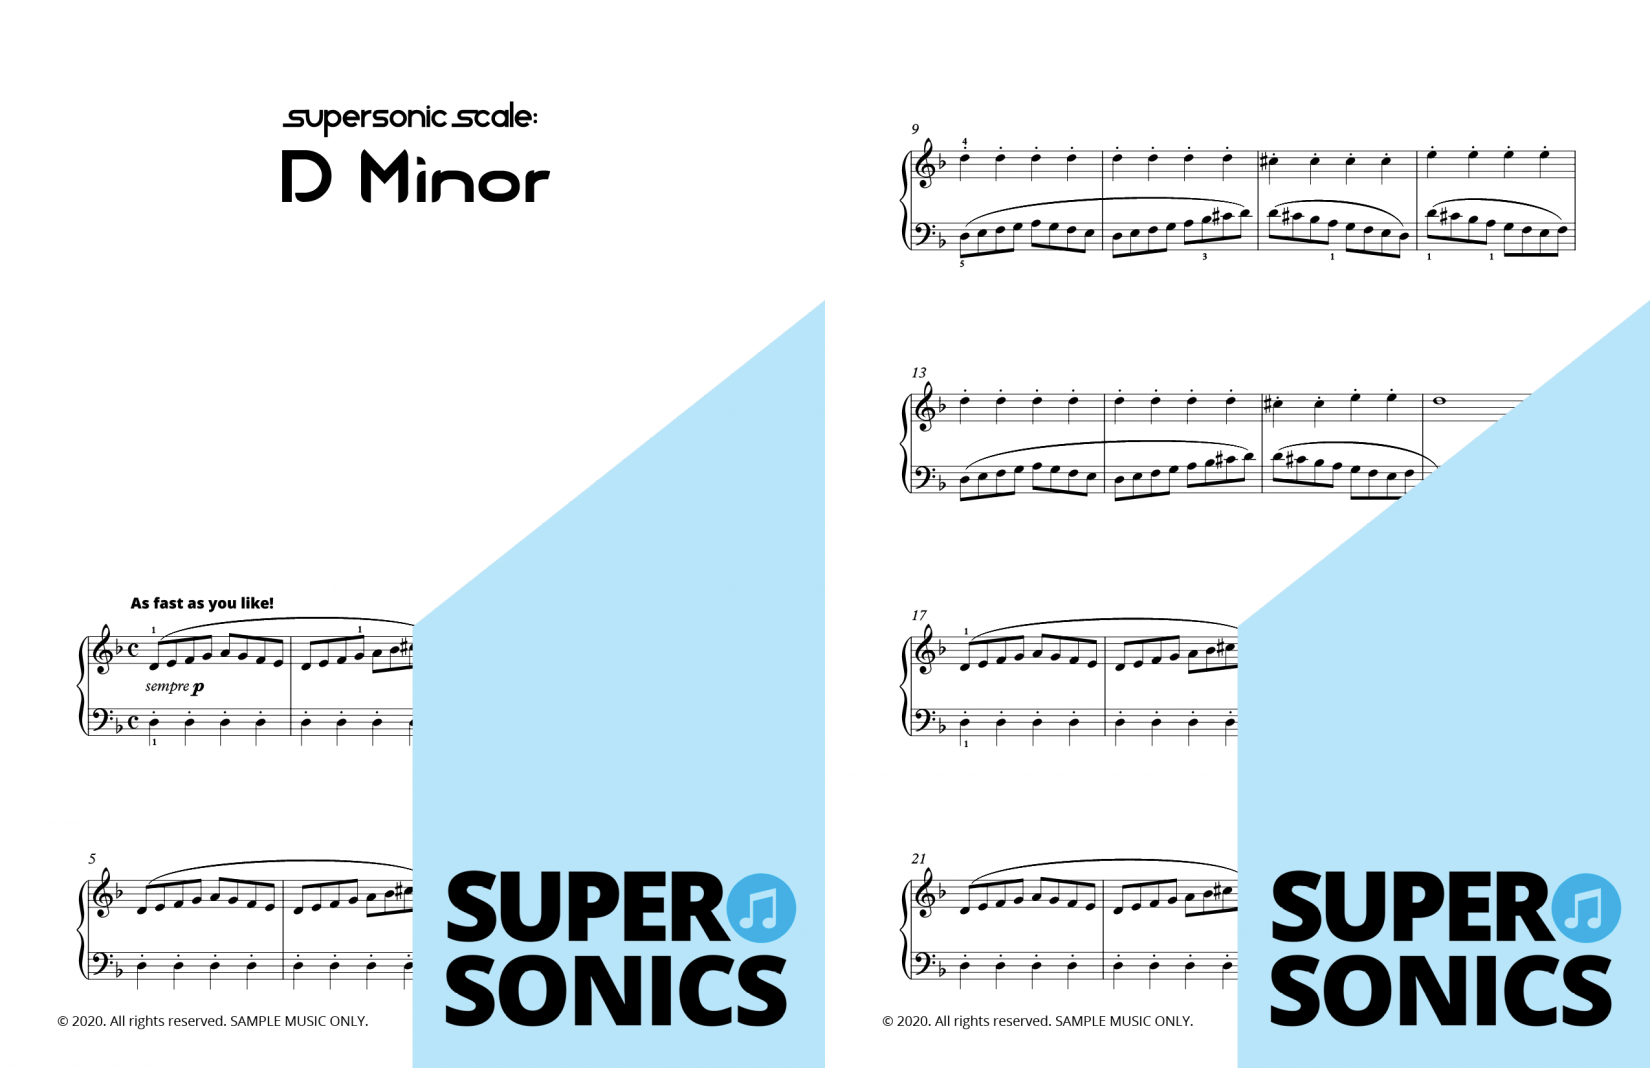 Supersonics Piano Scales and Modes sample